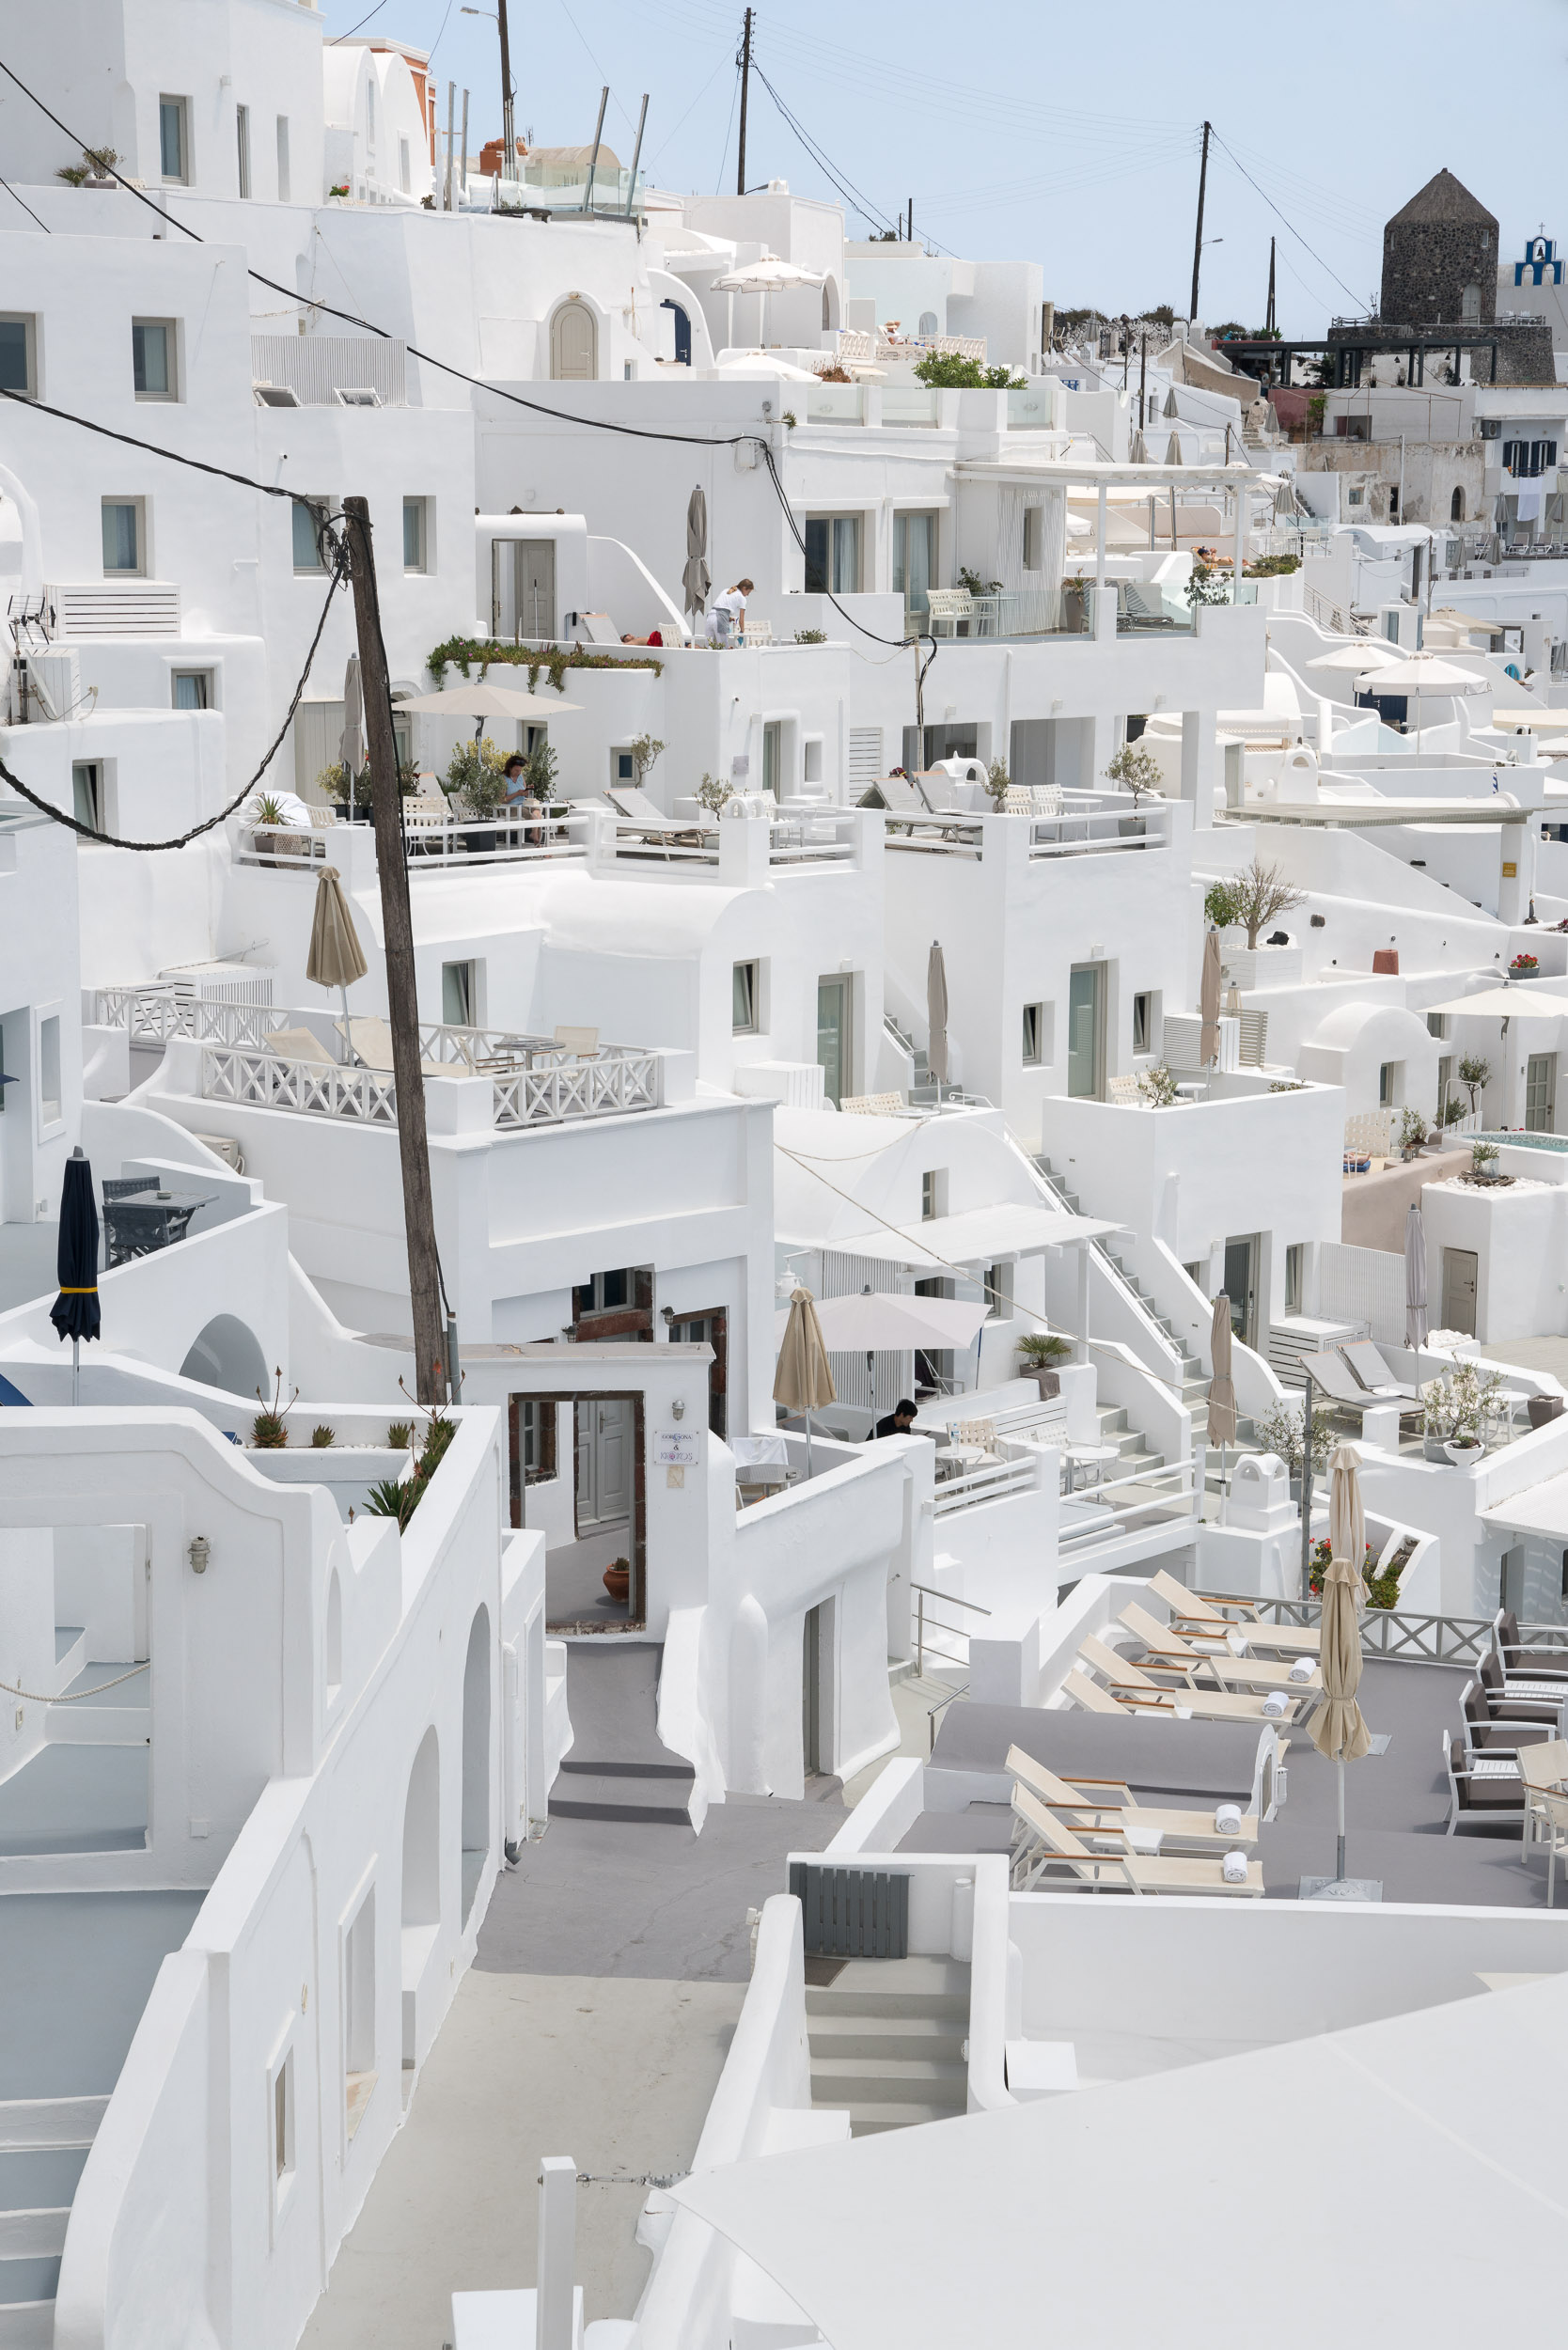 the_getaway_edit_greece_santorini-7.jpg